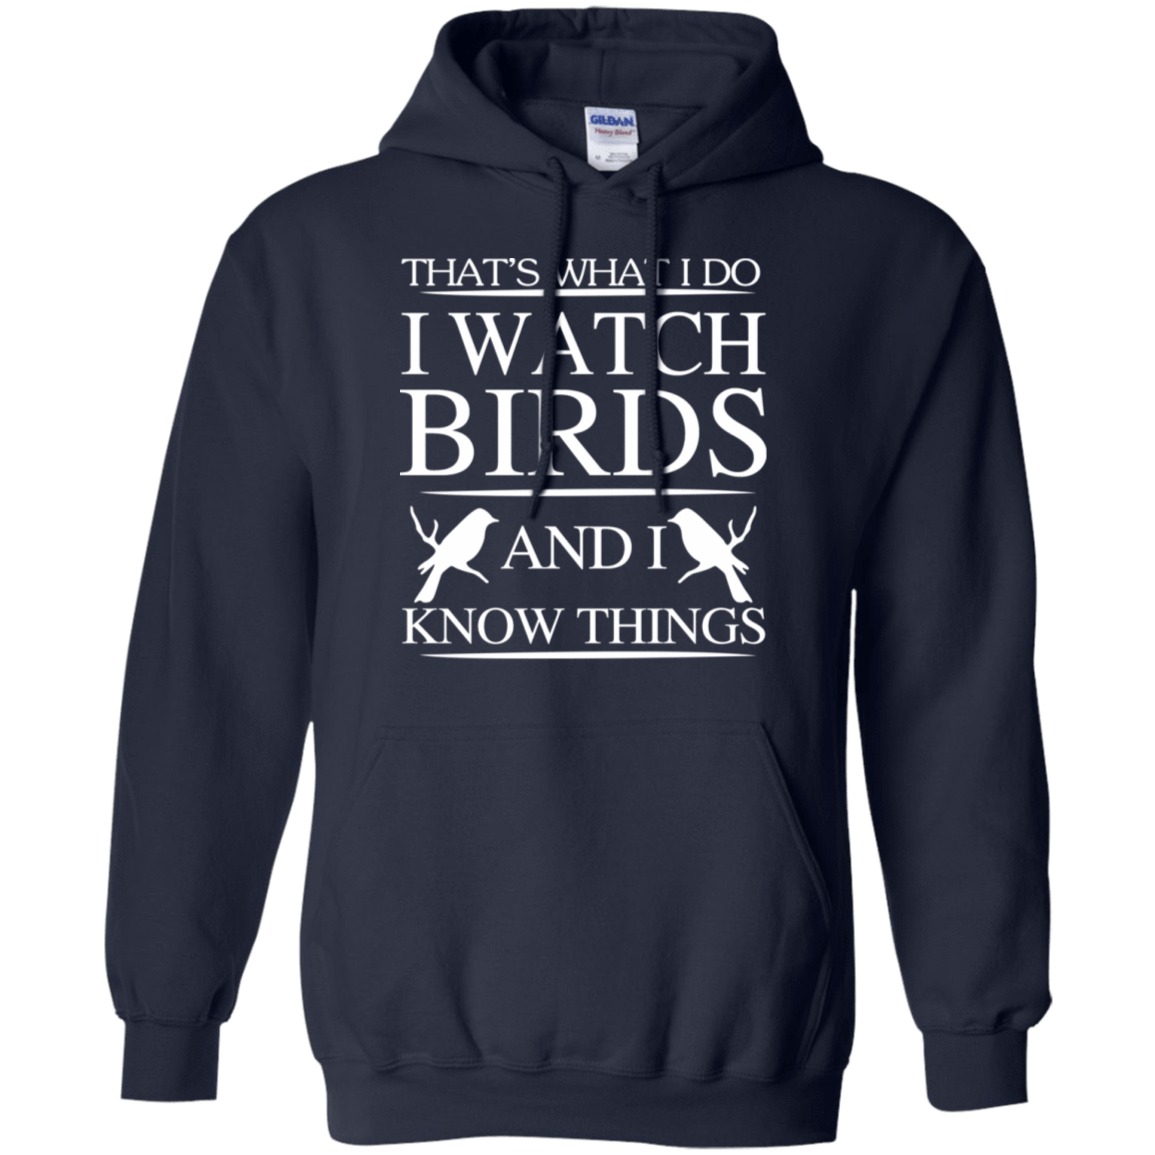 That's What I Do I Watch Birds And I Know Things 541-4742-72789238-23135 - Tee Ript